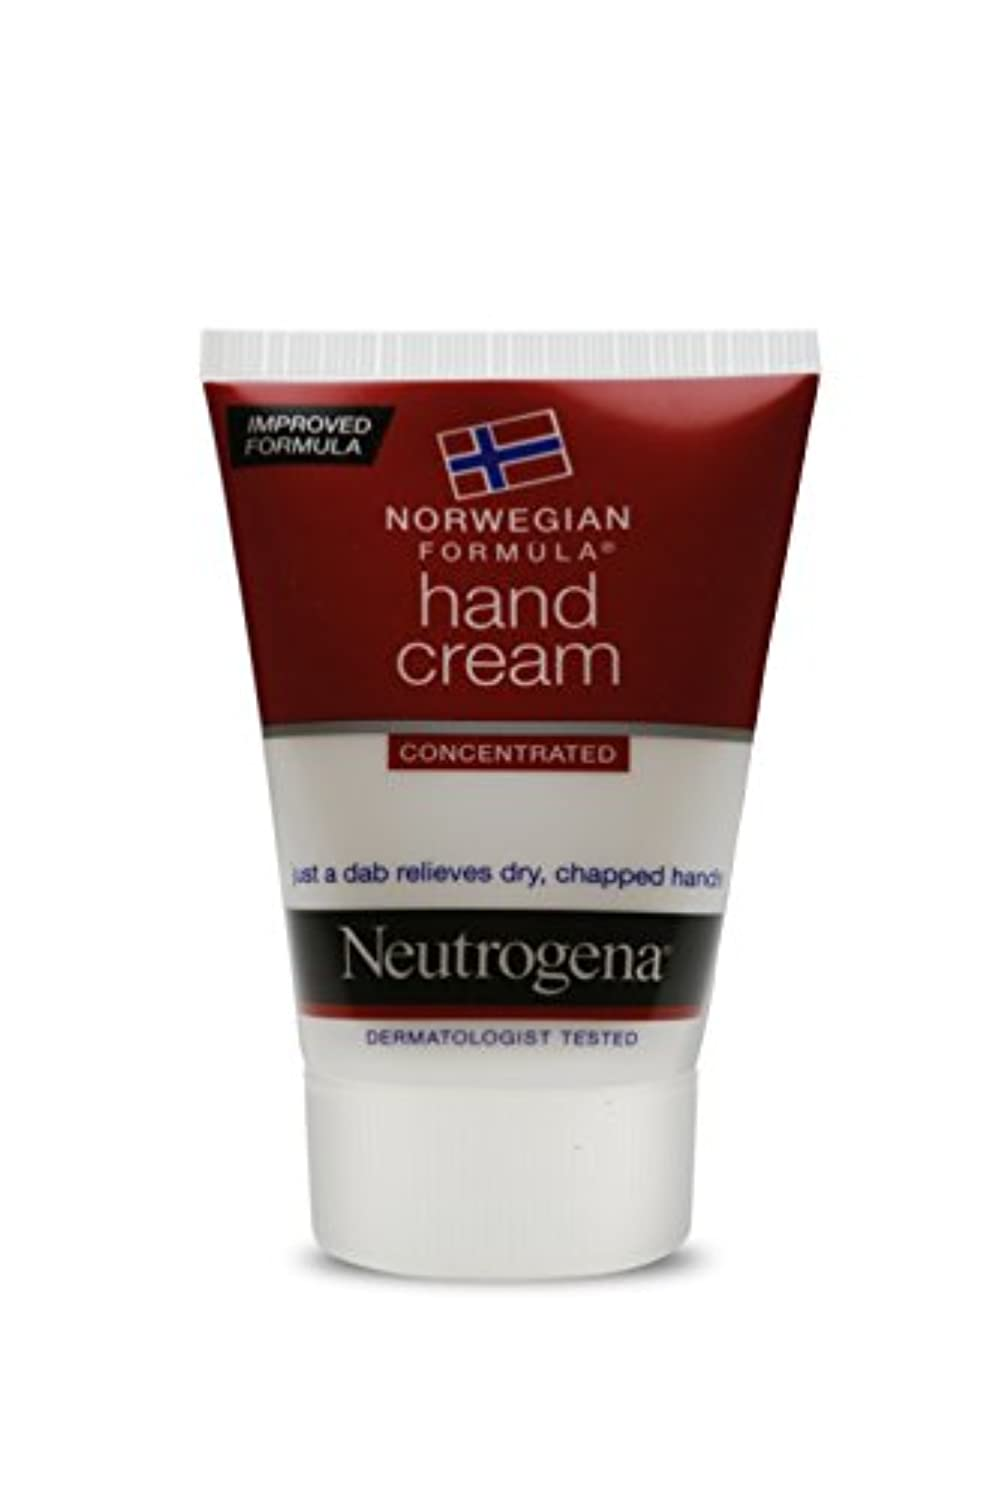 発見アクセススチールNeutrogena Norwegian Formula Hand Cream, 56g